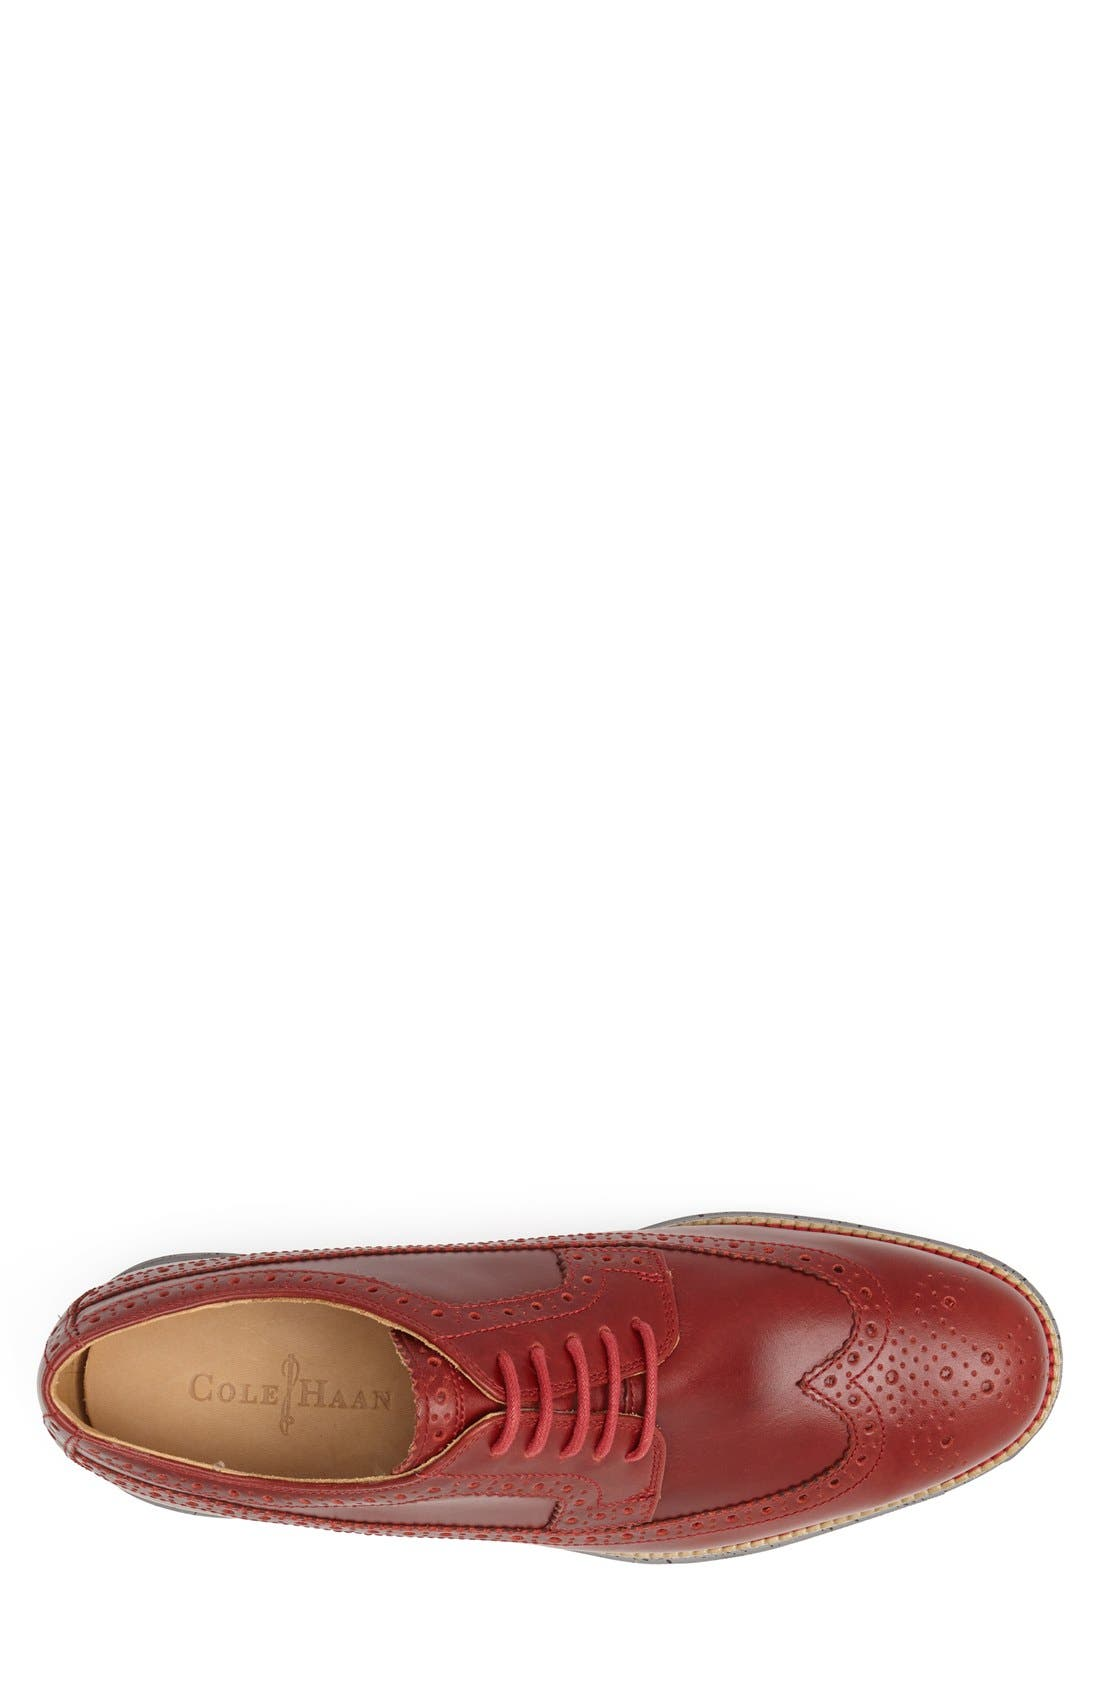 Alternate Image 3  - Cole Haan 'LunarGrand' Longwing Derby (Men) (Nordstrom Exclusive)